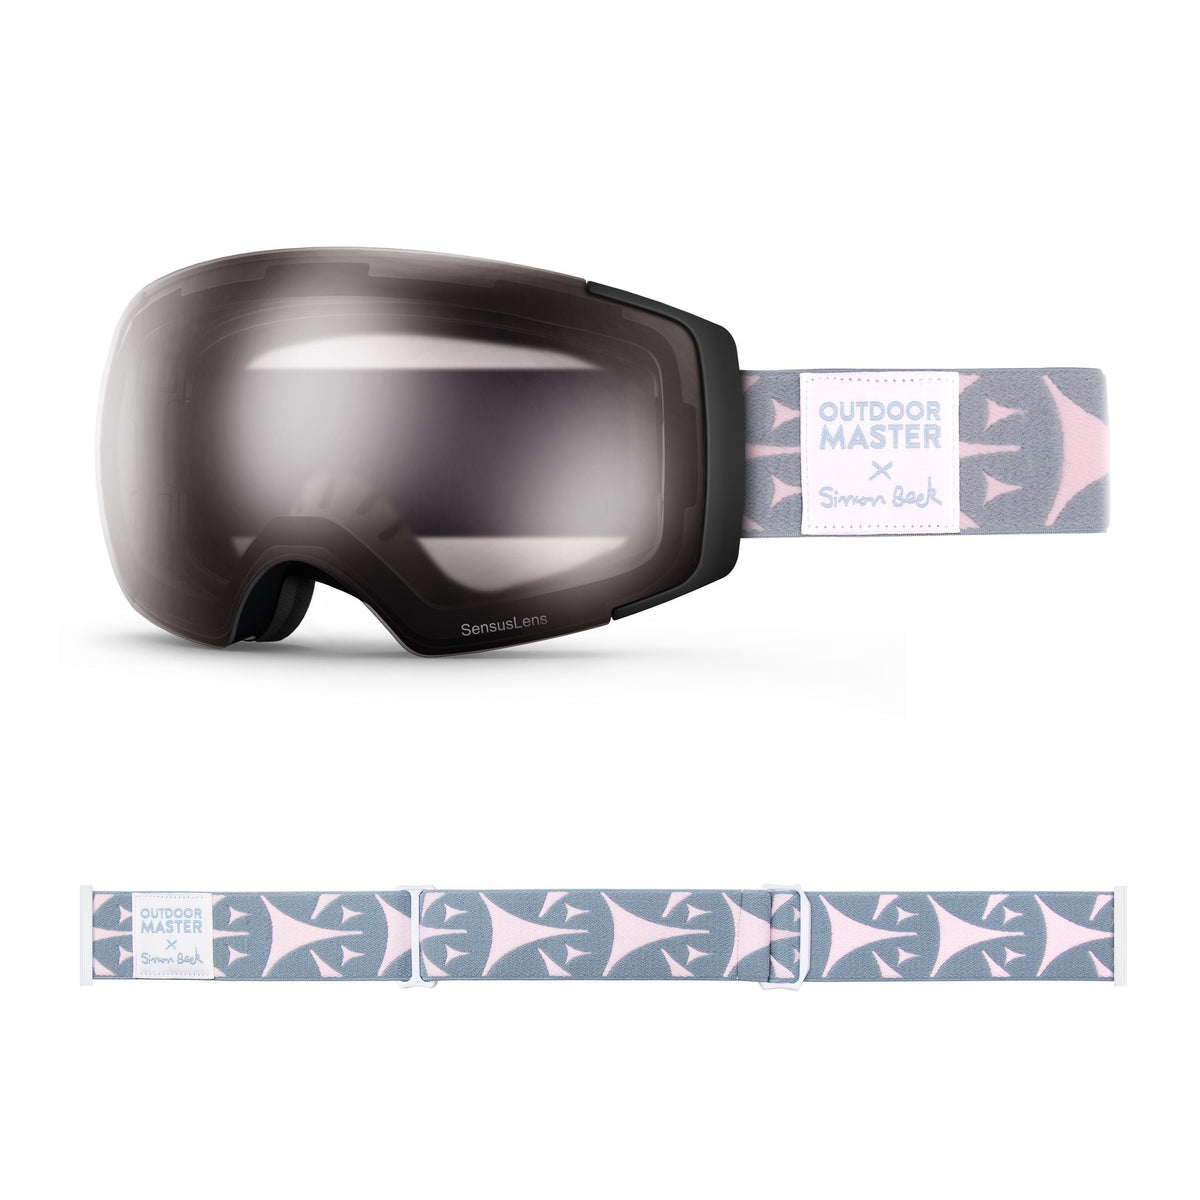 OutdoorMaster x Simon Beck Ski Goggles Pro Series - Snowshoeing Art Limited Edition OutdoorMaster SensusLens VLT40-80% Photochromatic Clear to Pink Bouncy Triangles